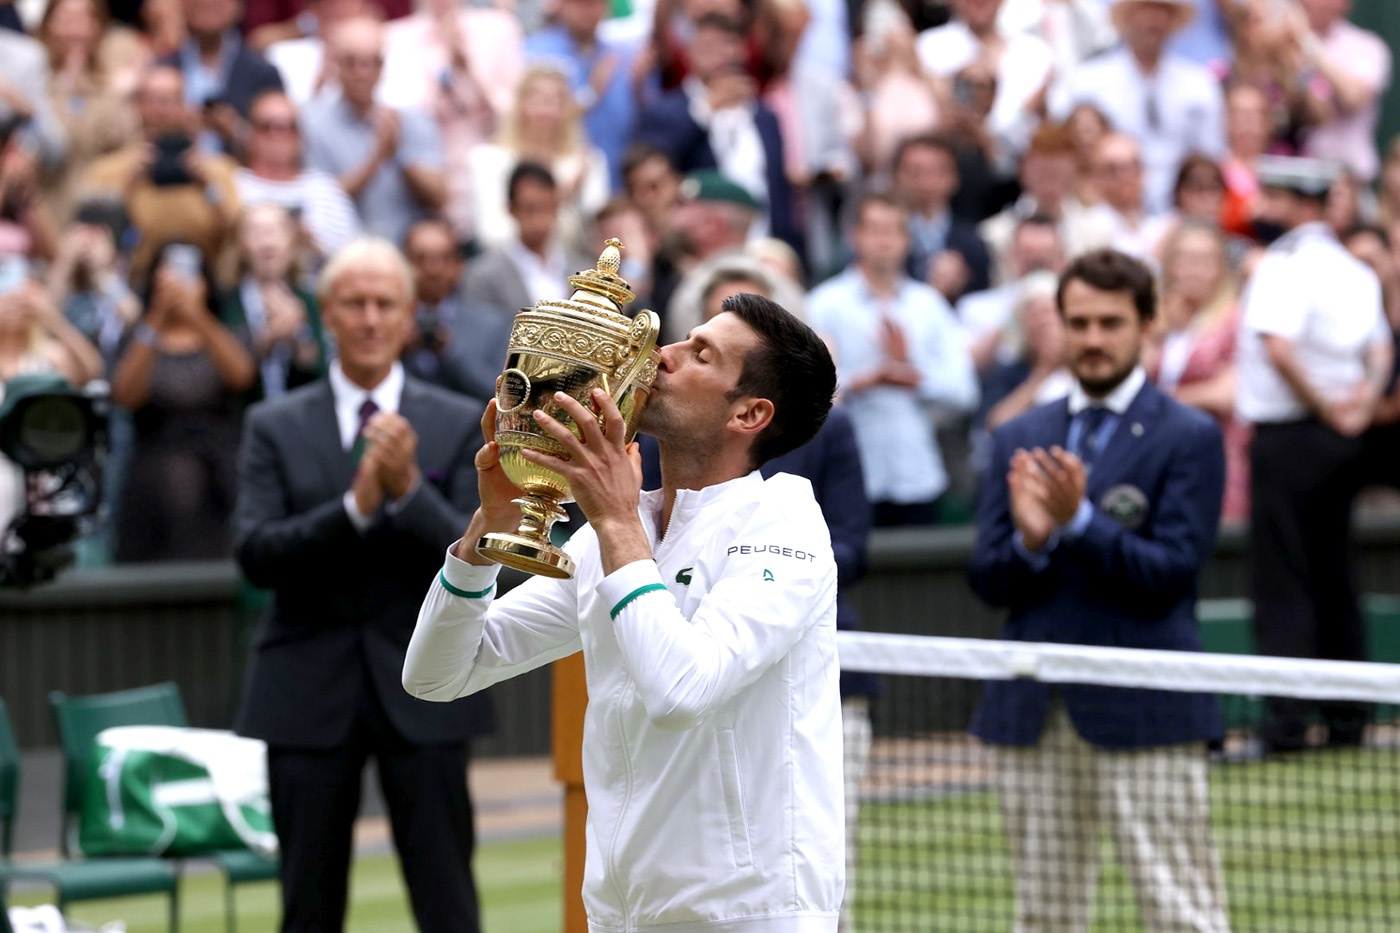 <b>News</b> - The Championships, Wimbledon 2021 - Official Site by IBM